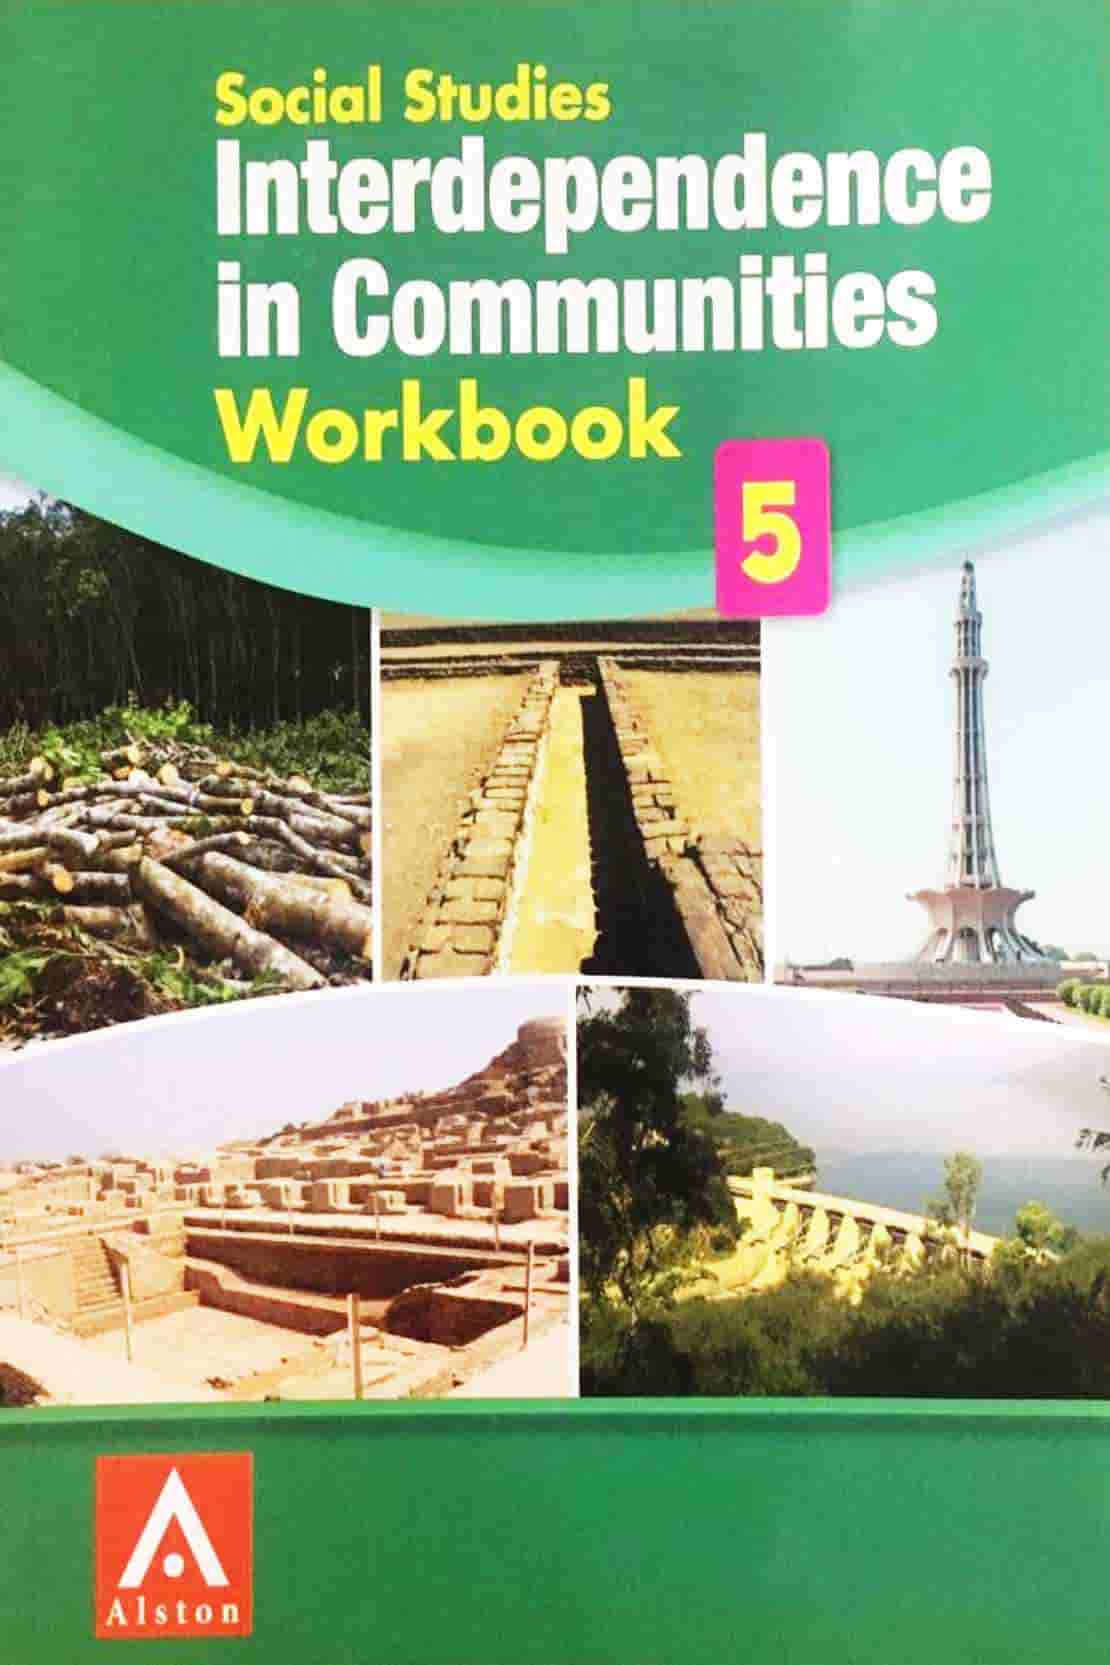 INTERDEPENDENCE IN COMMUNITIES WORKBOOK 5